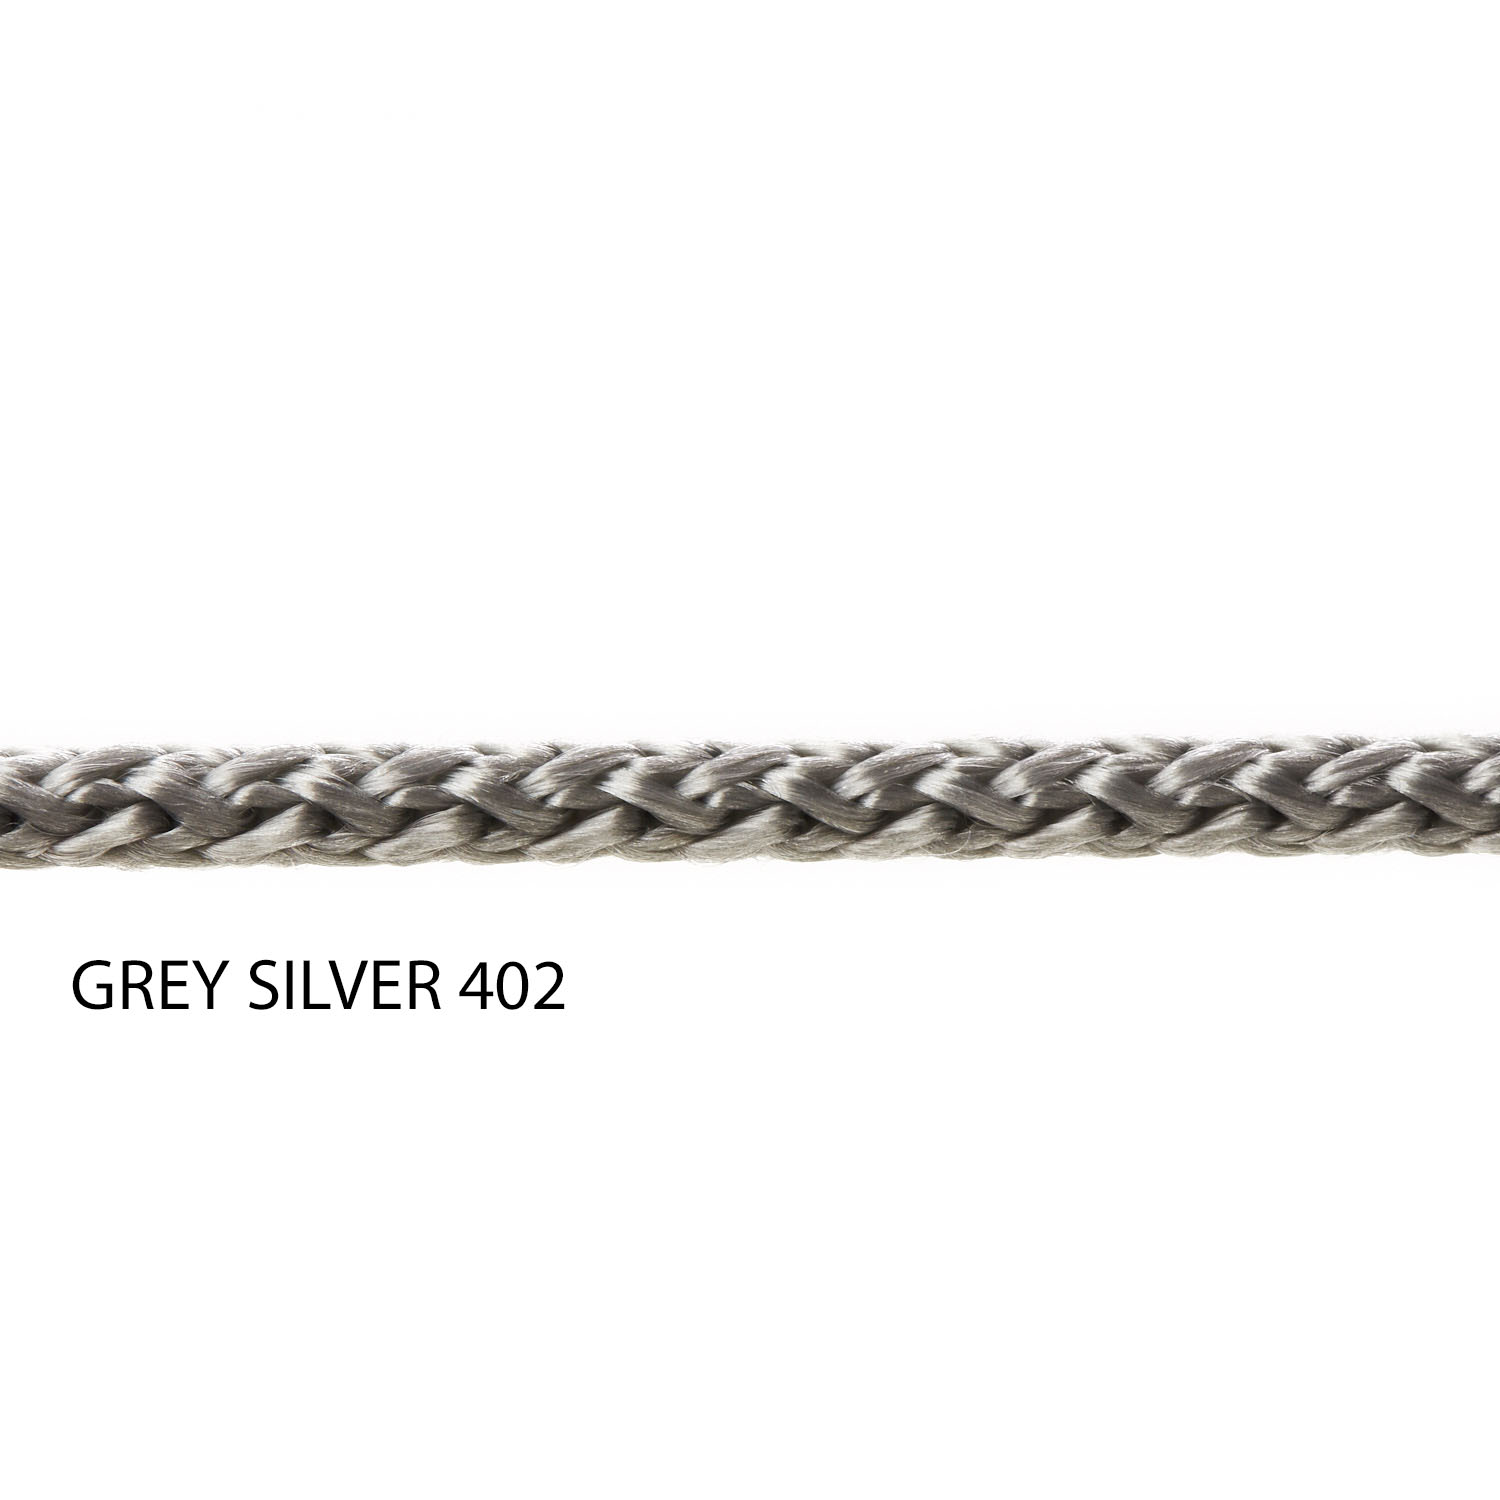 Grey Silver 402 Yarn Colour Polypropylene